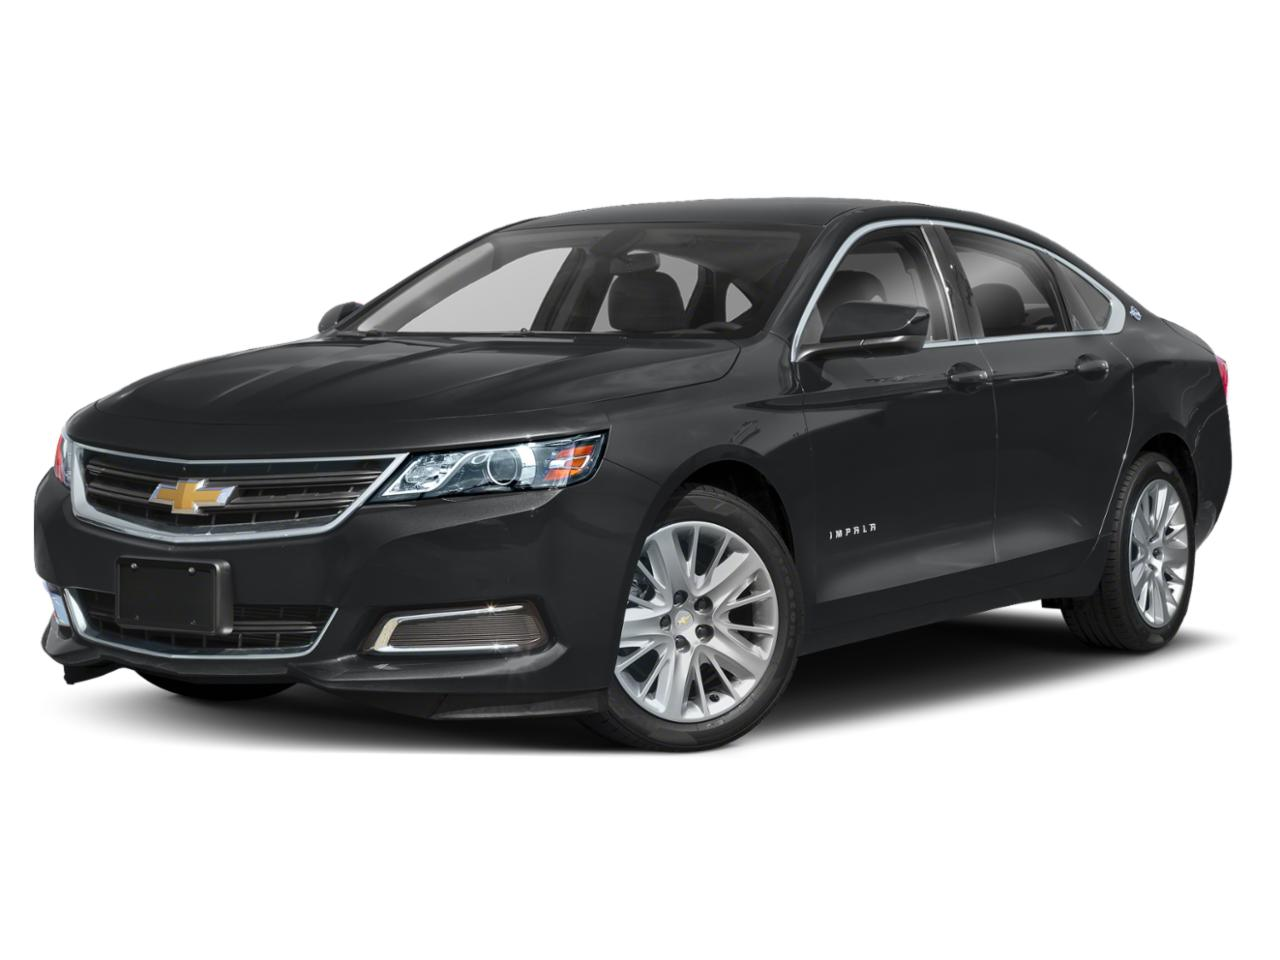 2019 Chevrolet Impala PREMIER 4dr Car Slide